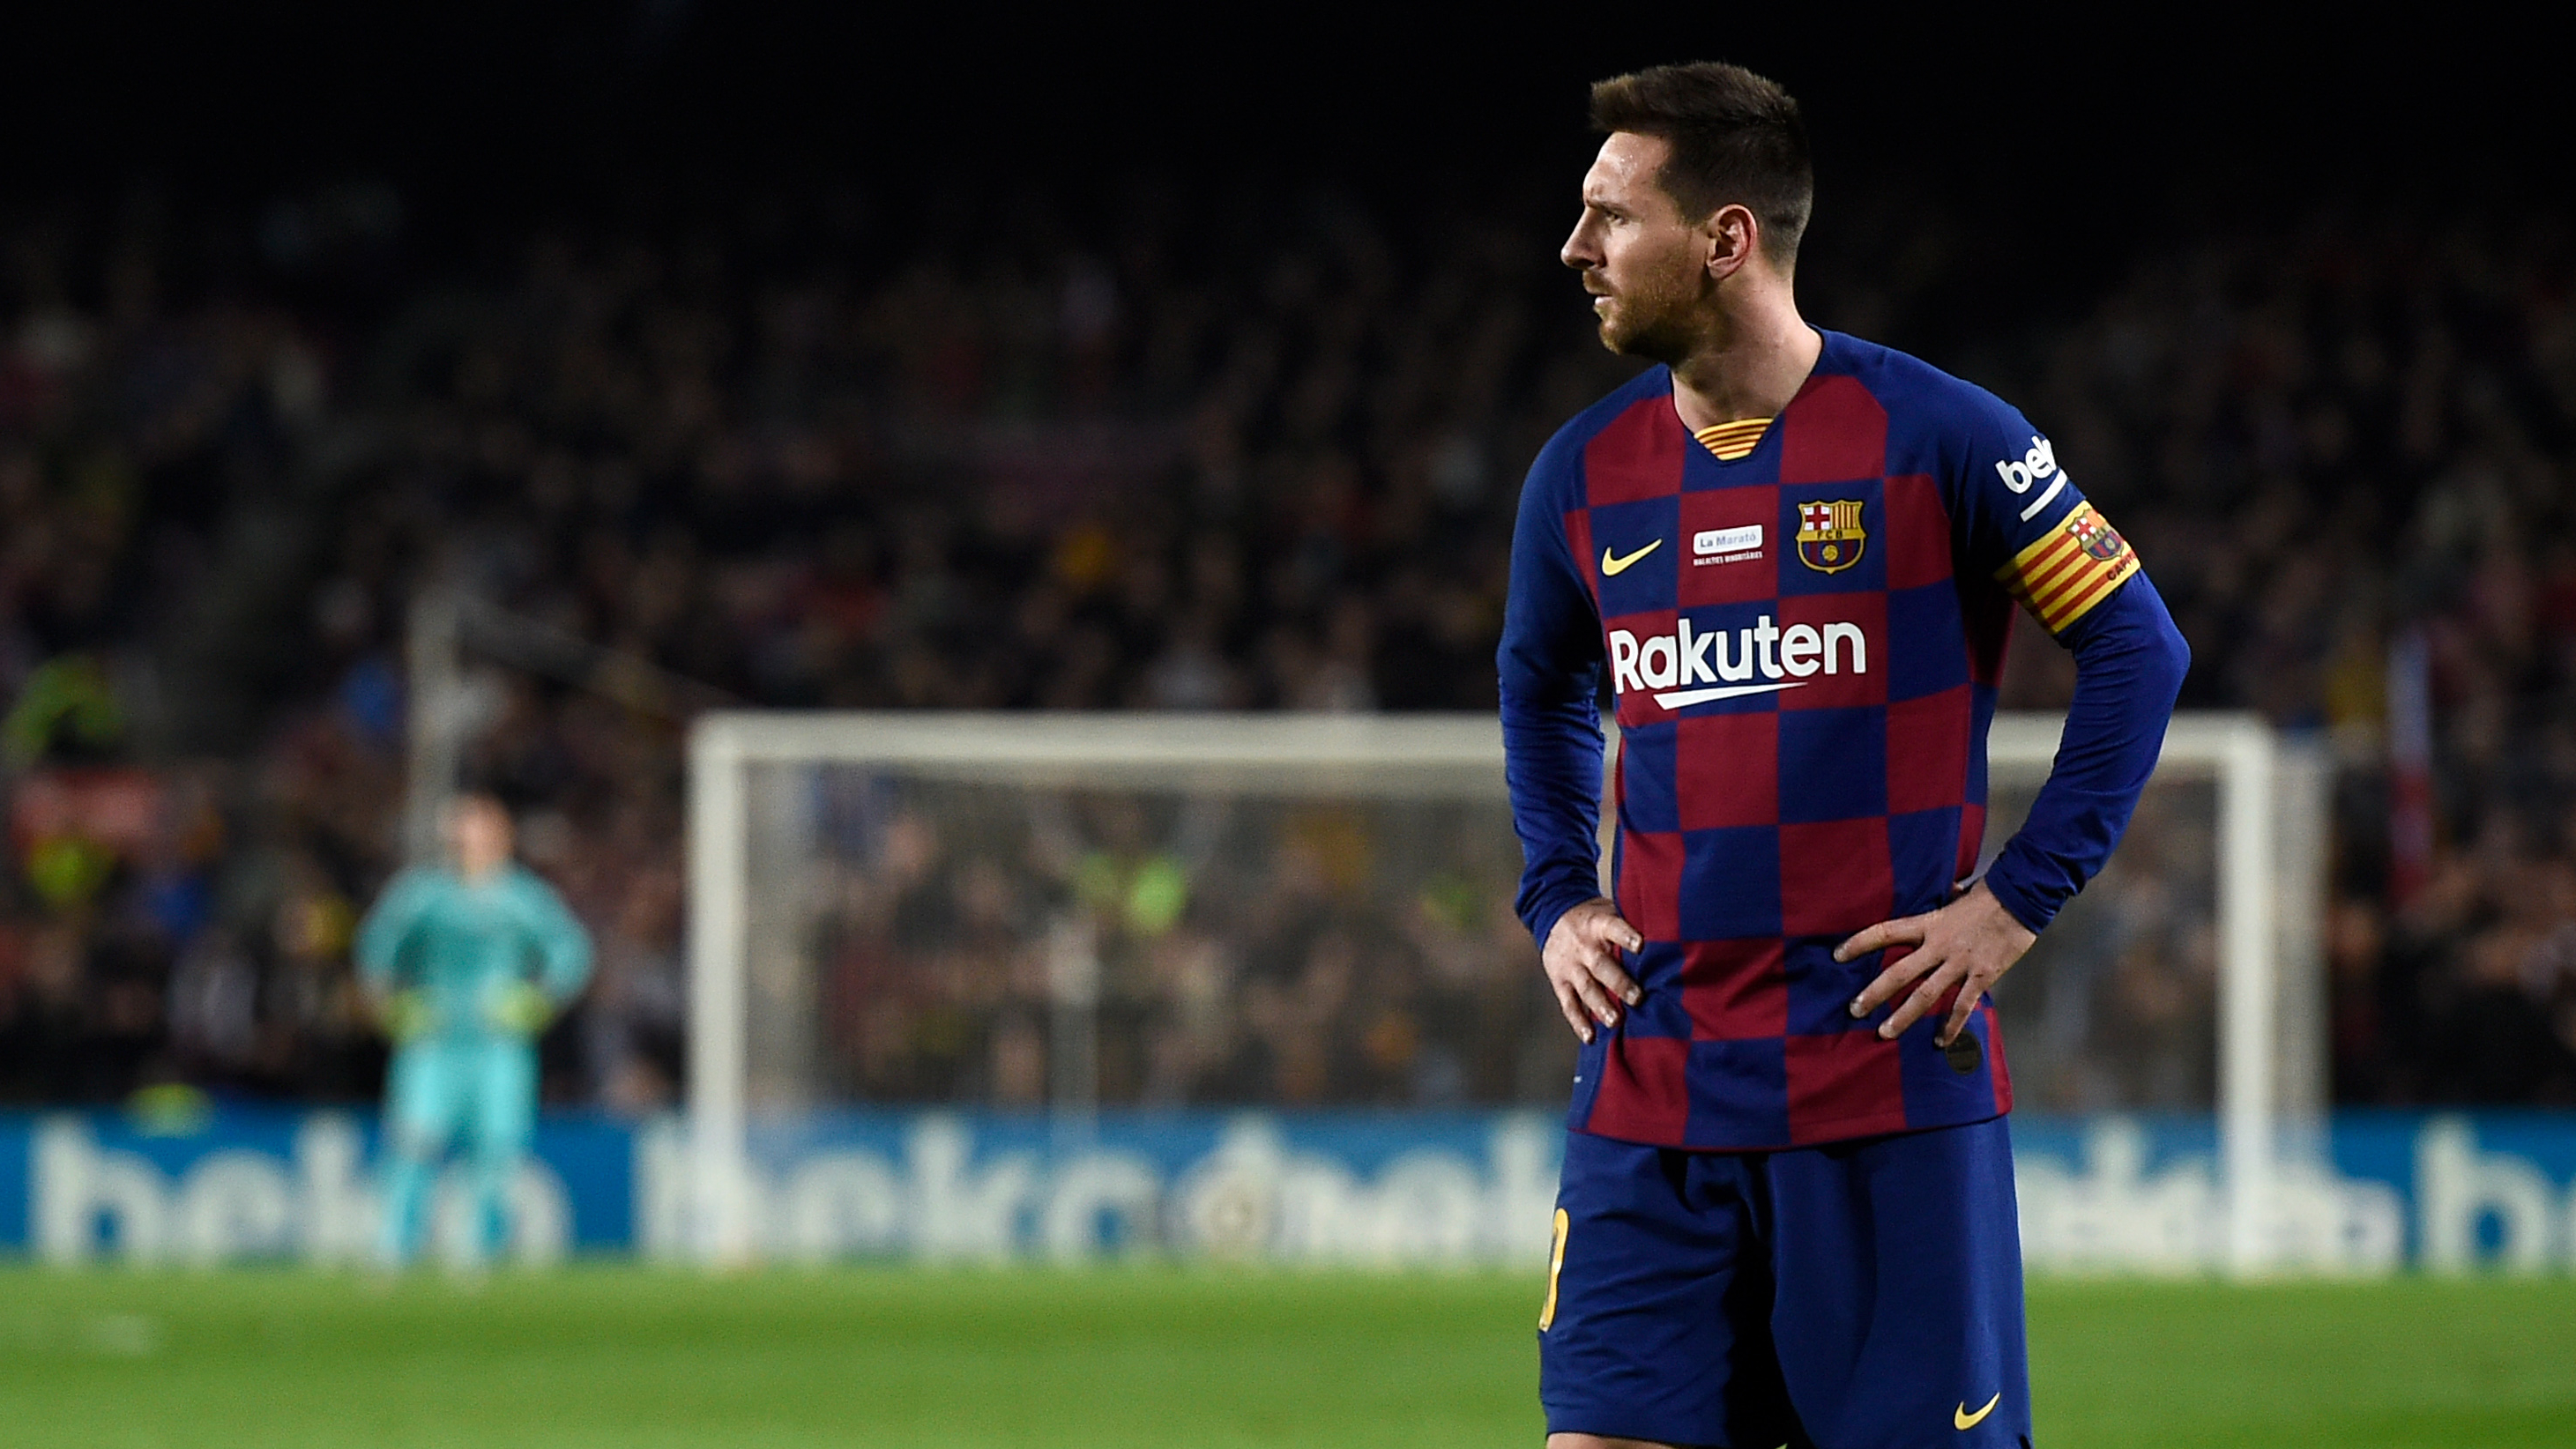 El Clasico will not be postponed again, says Barcelona president Bartomeu